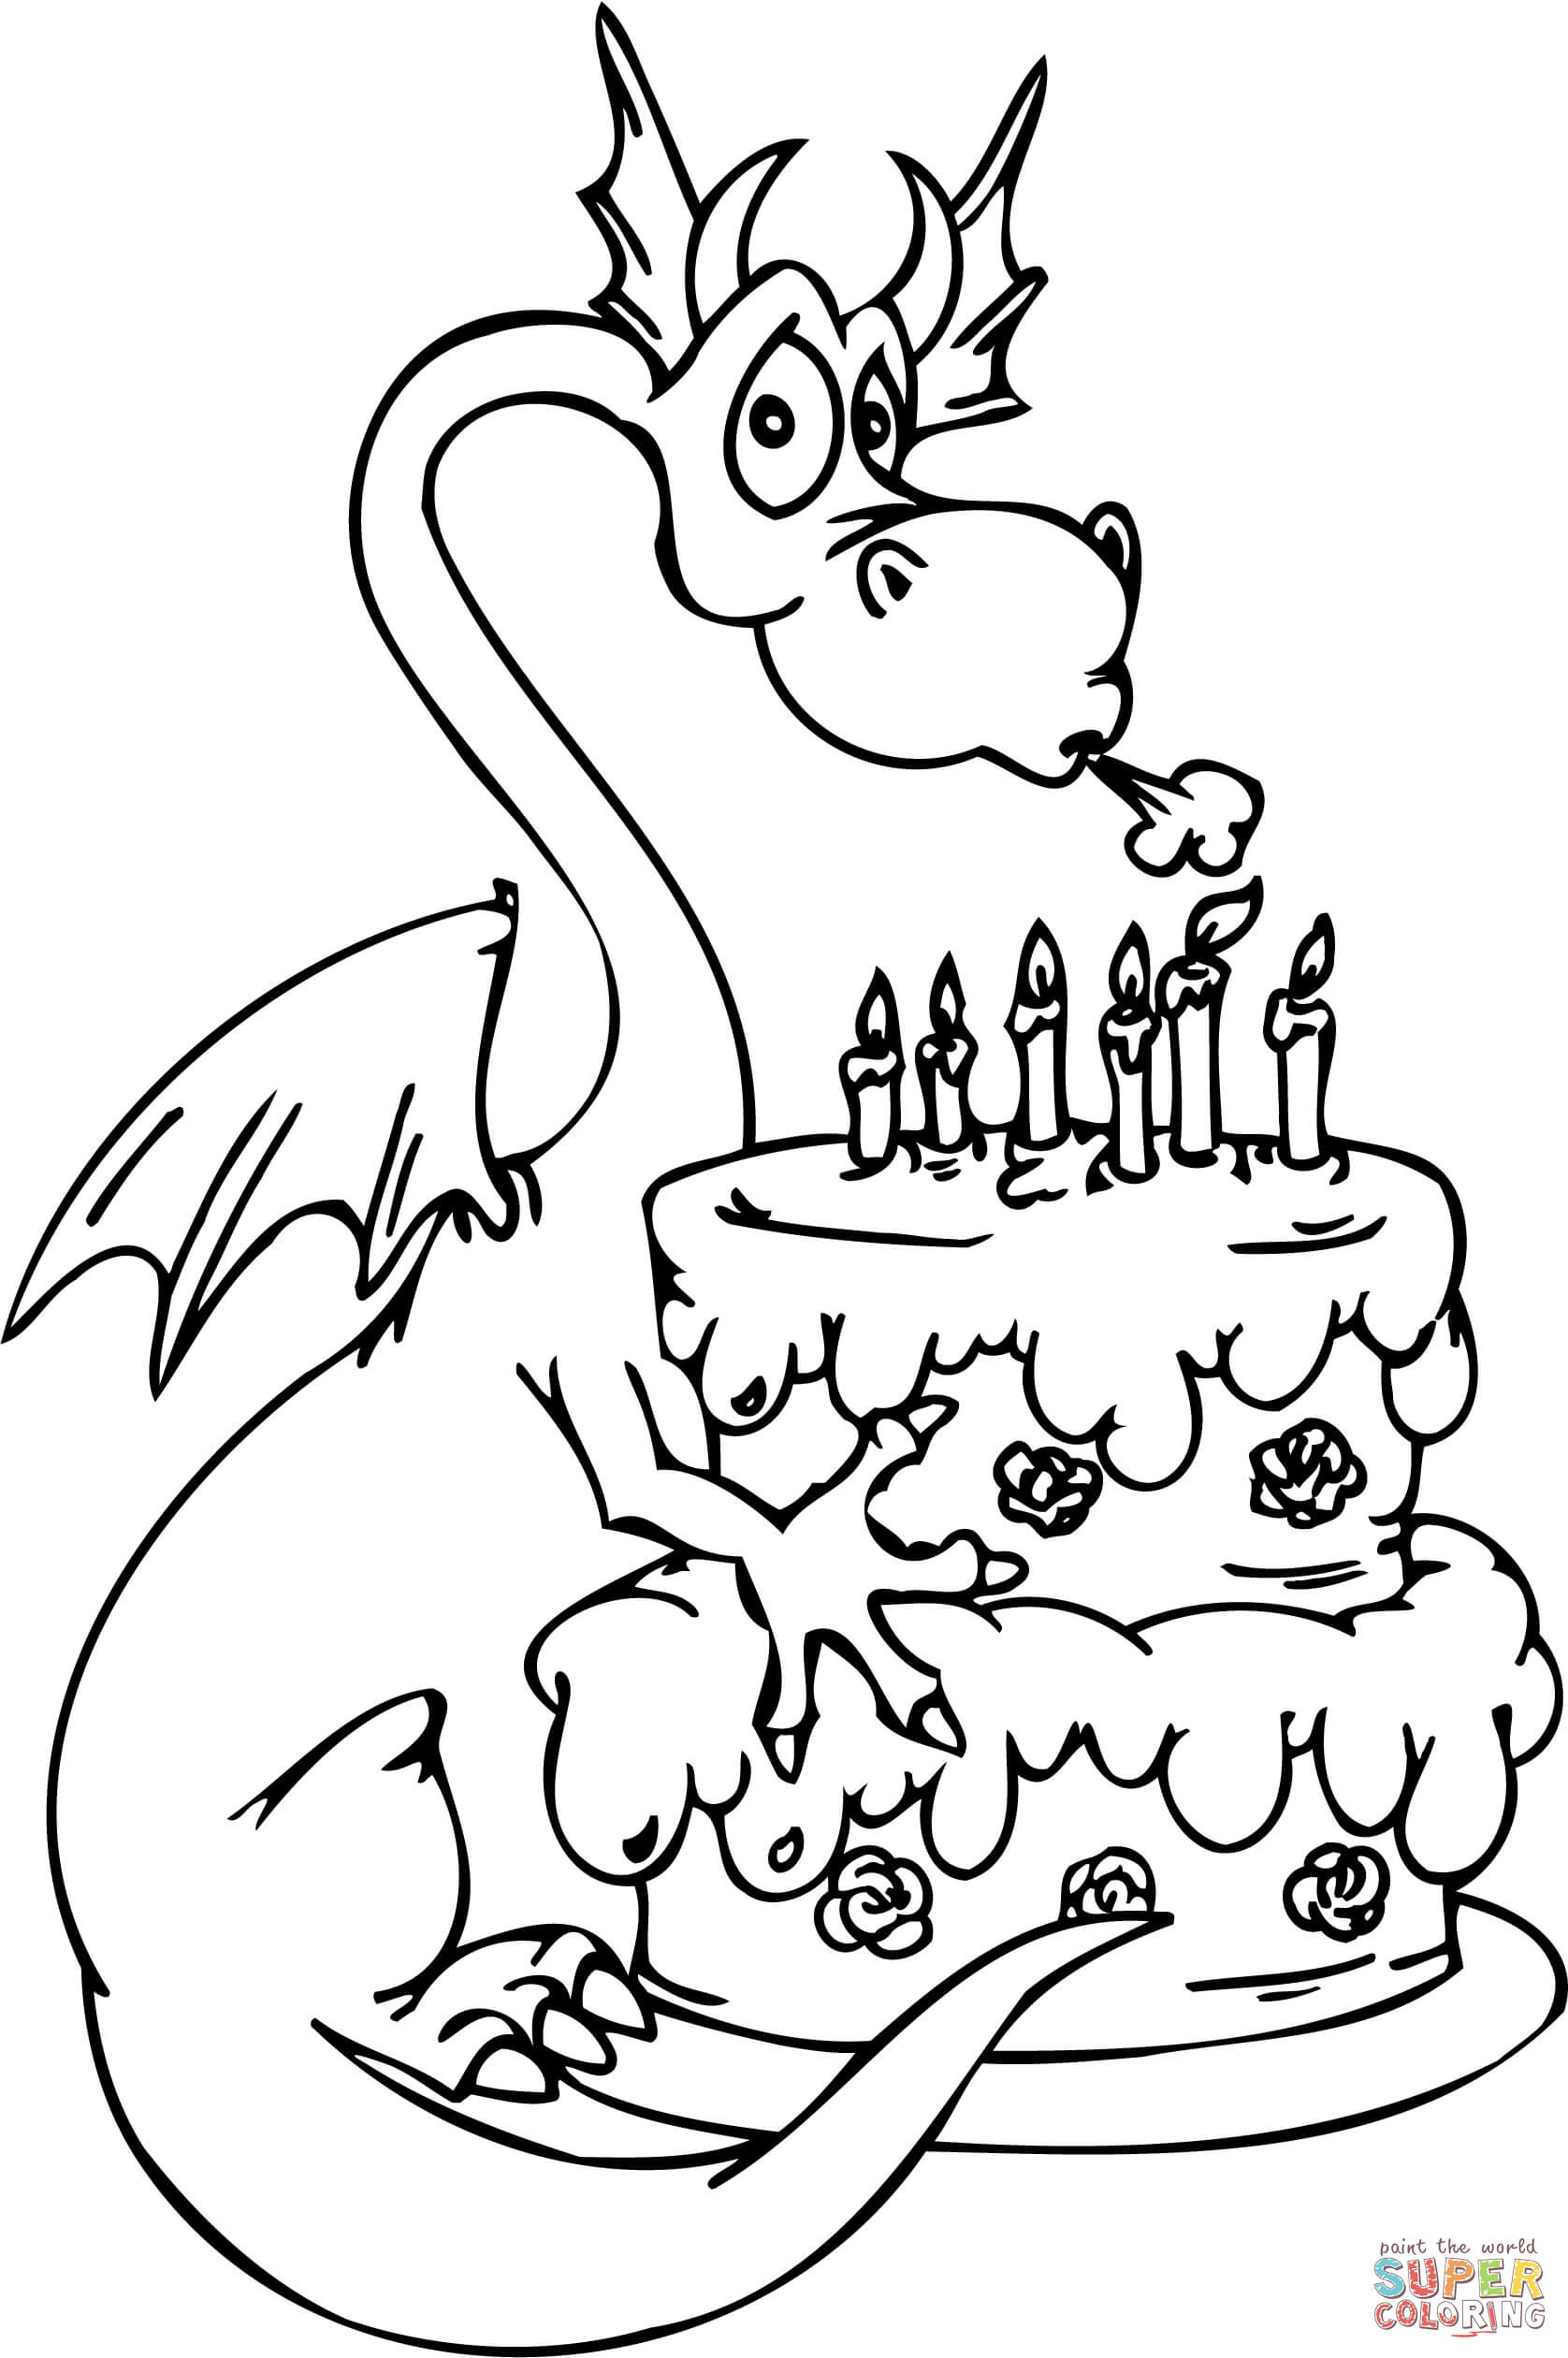 birthday cake coloring pages printable ; dragon-and-happy-birthday-cake-coloring-page